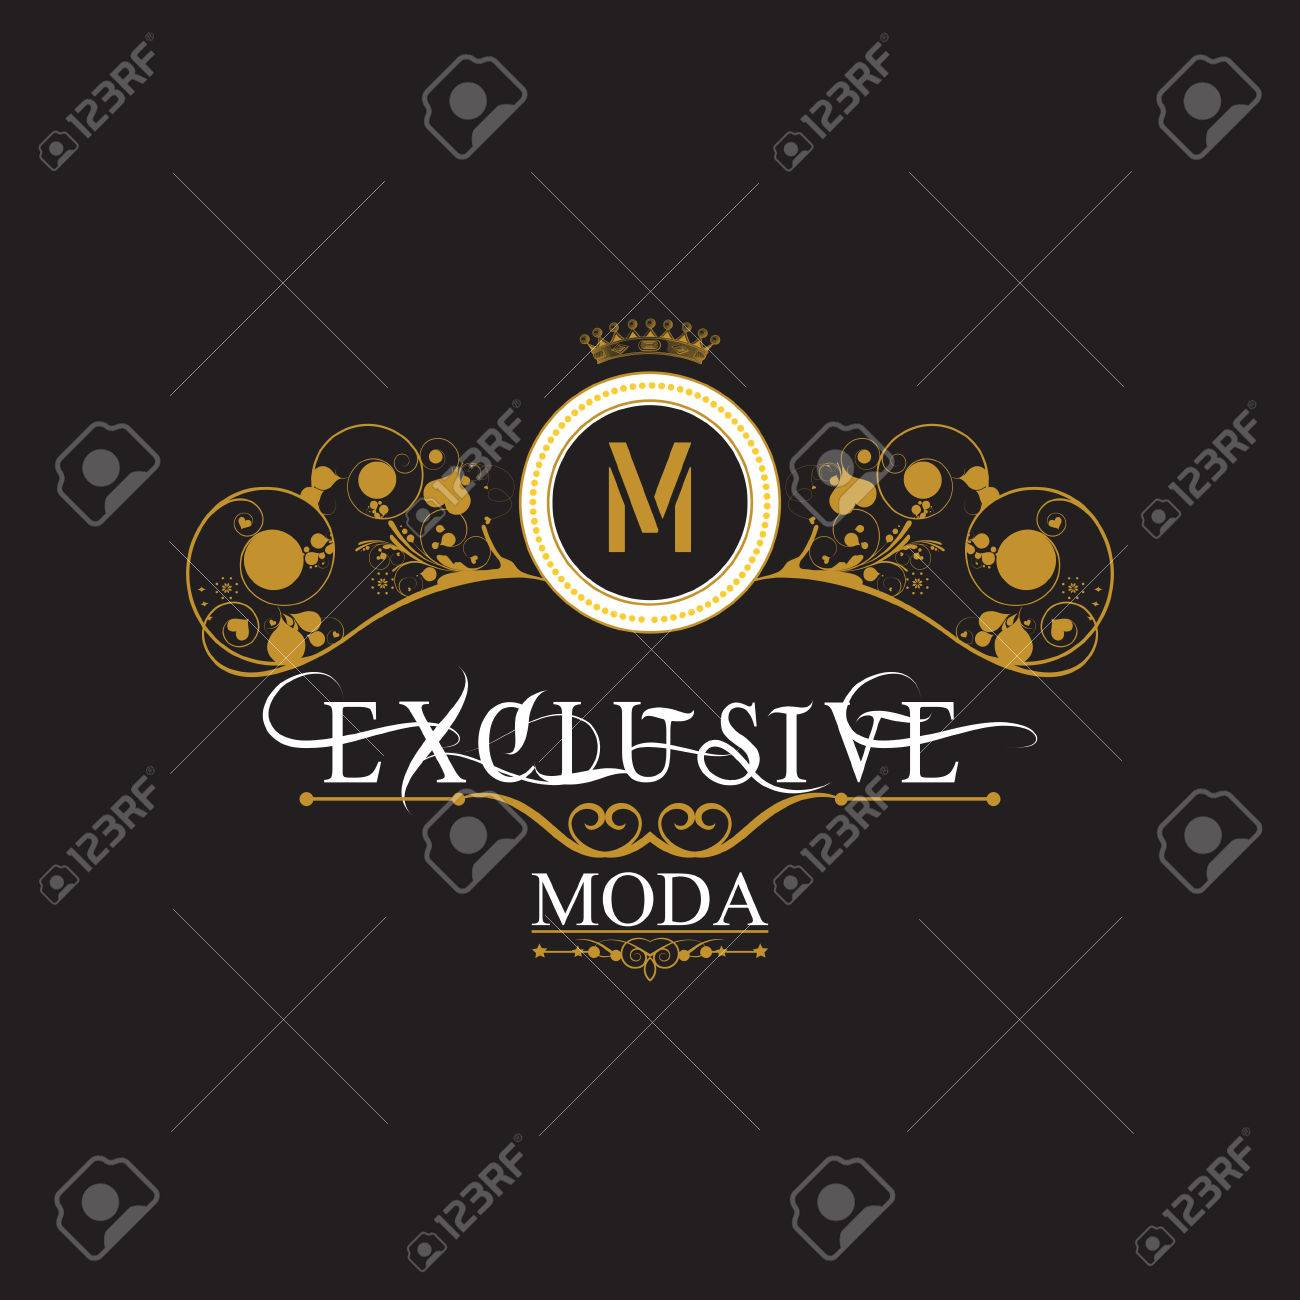 Vintage gold antique frame on black. EXCLUSIVE MODA. Logo expensive and exclusive - 57263758